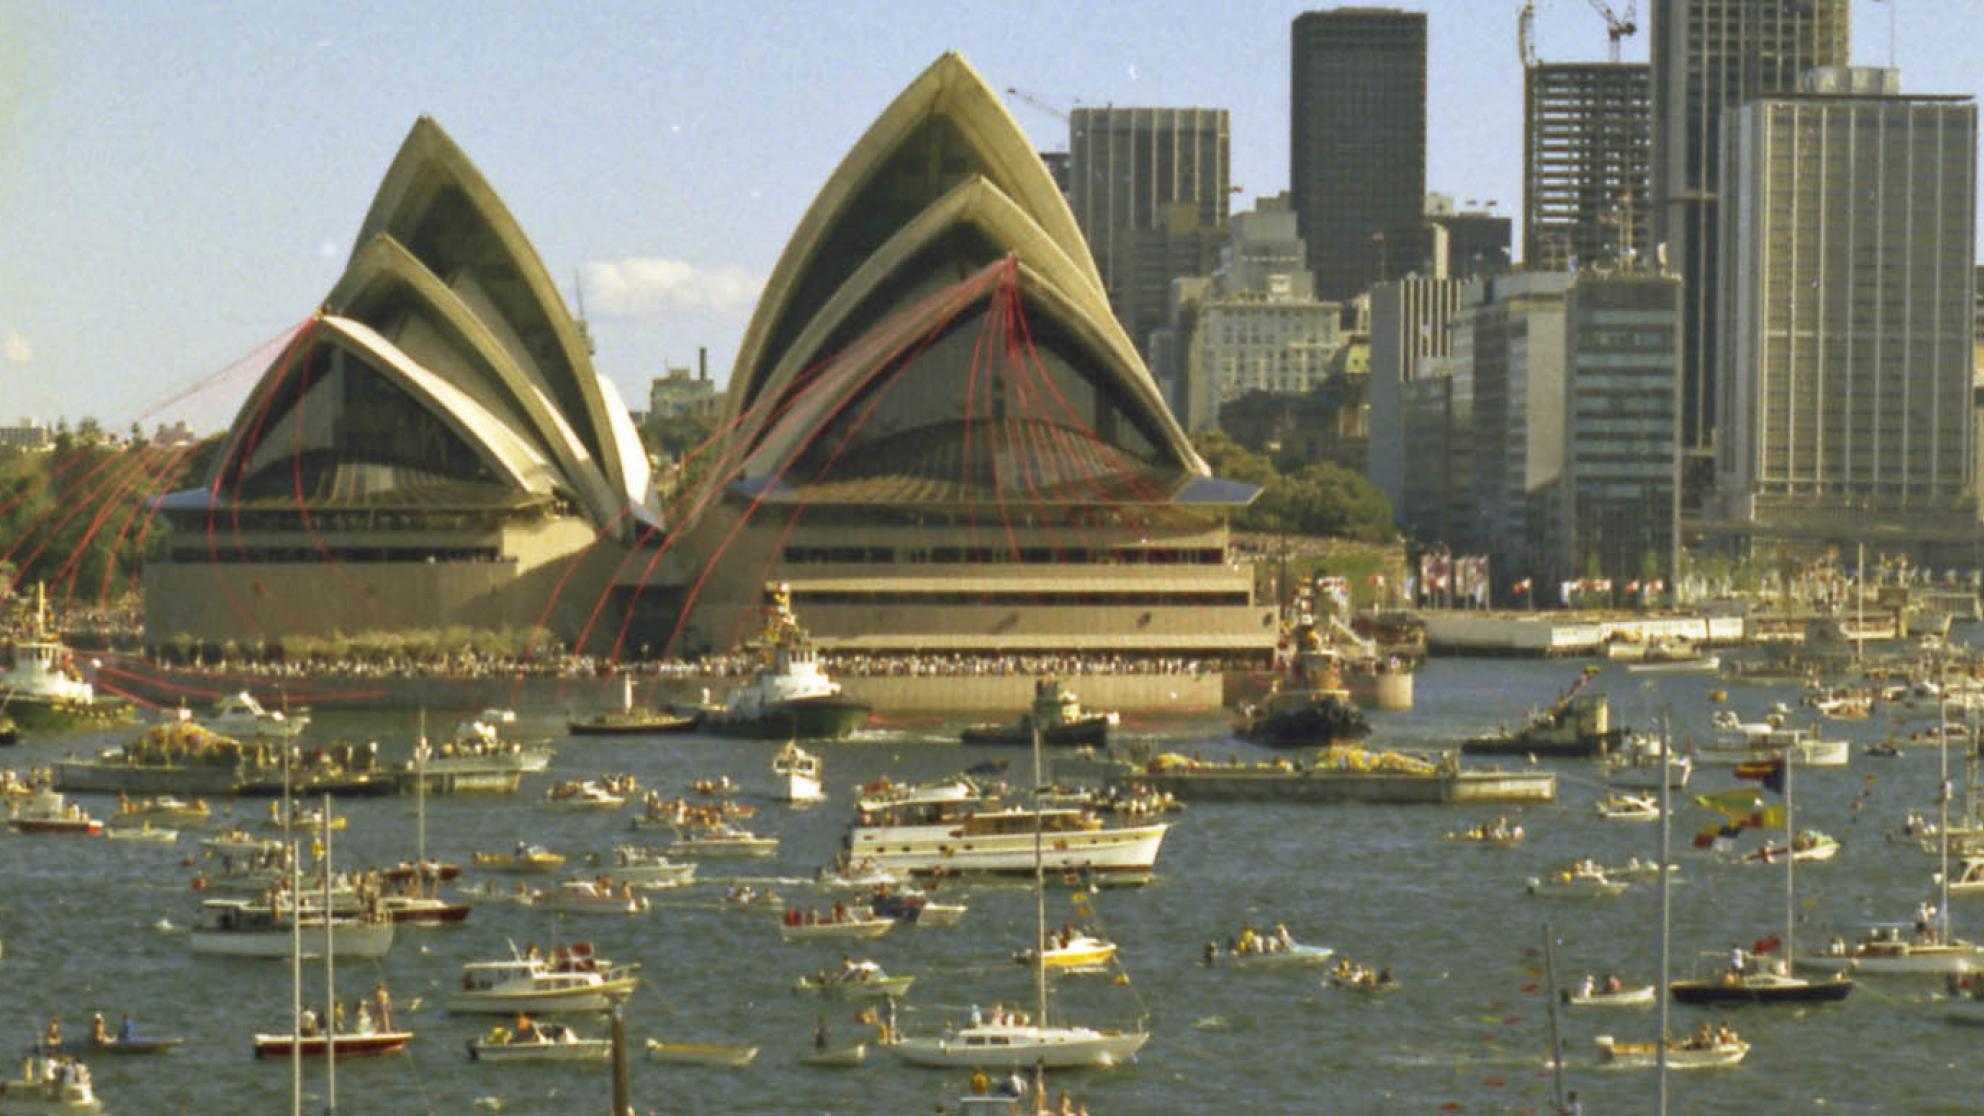 The Sydney Opera House is festooned with red ribbons. There are many boats on the water in front of it.